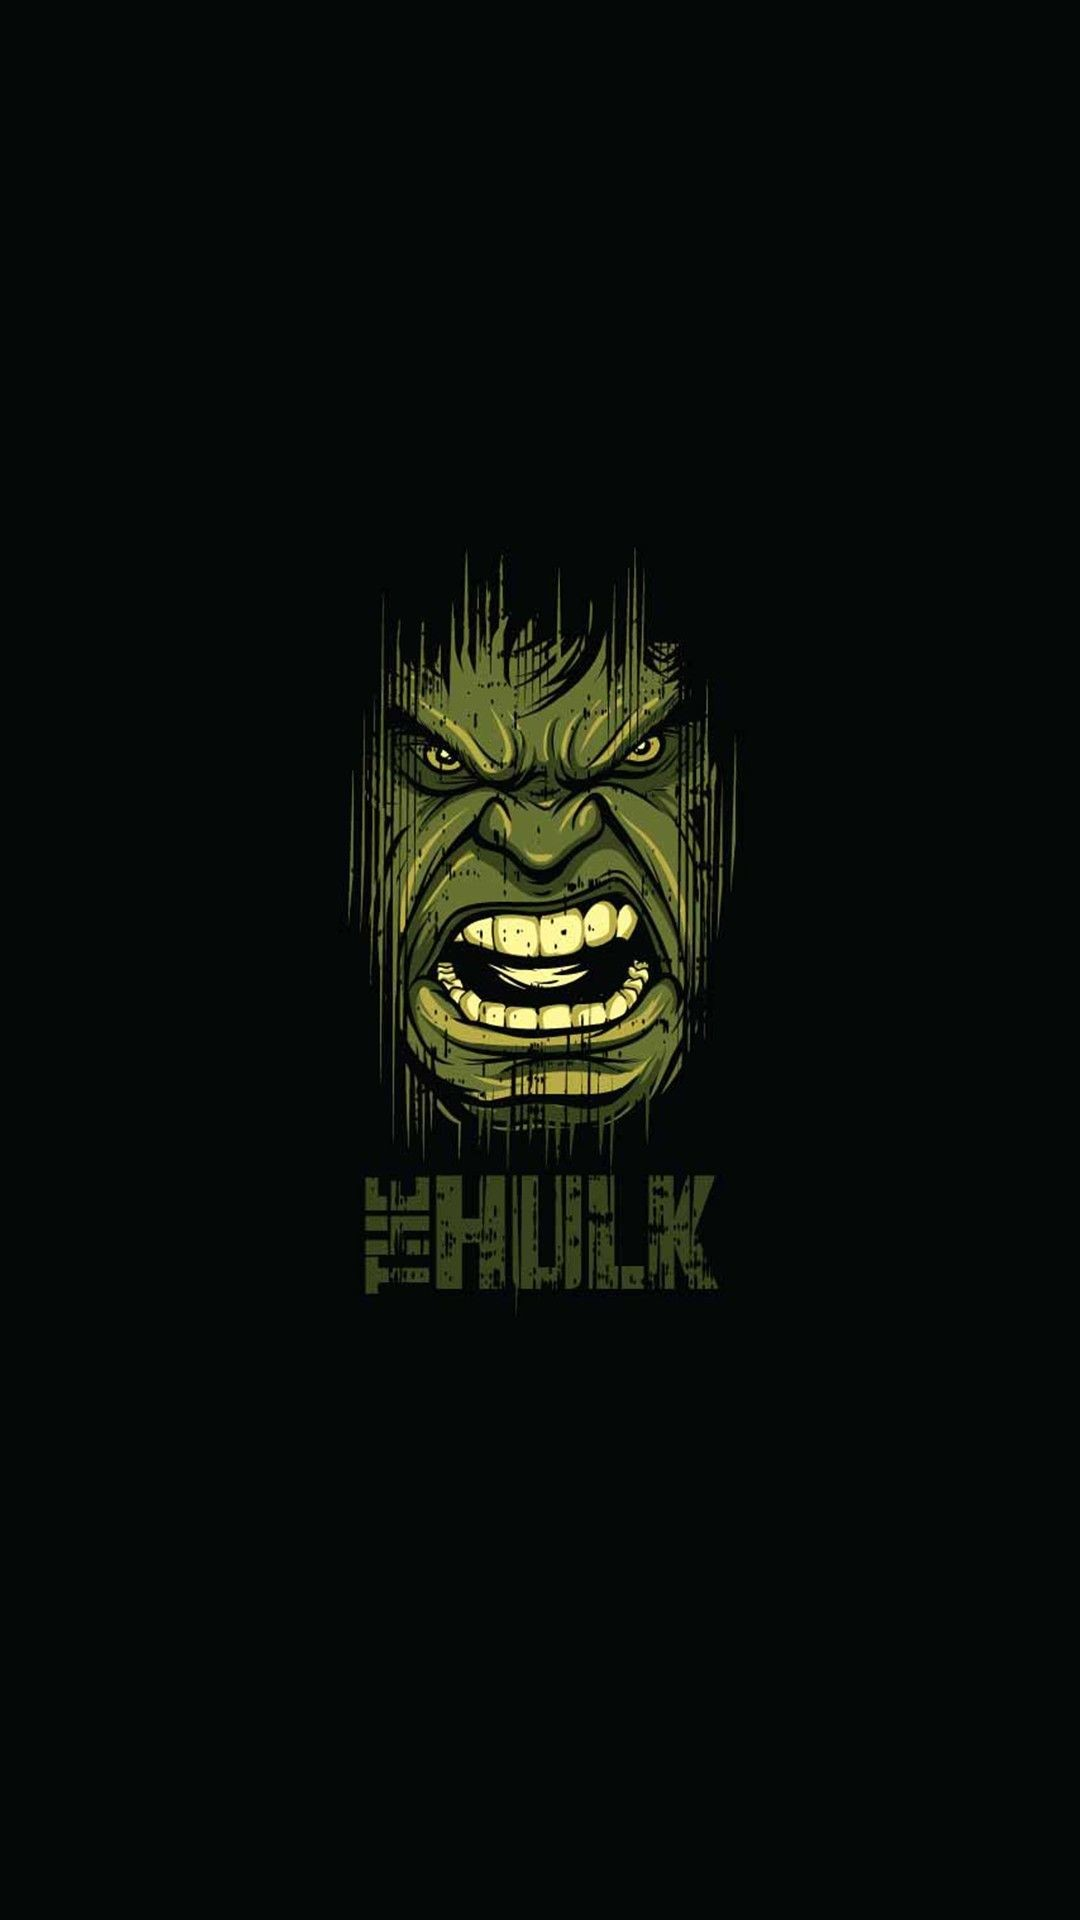 Free Download 66 Hulk Live Wallpapers On Wallpaperplay 1080x1920